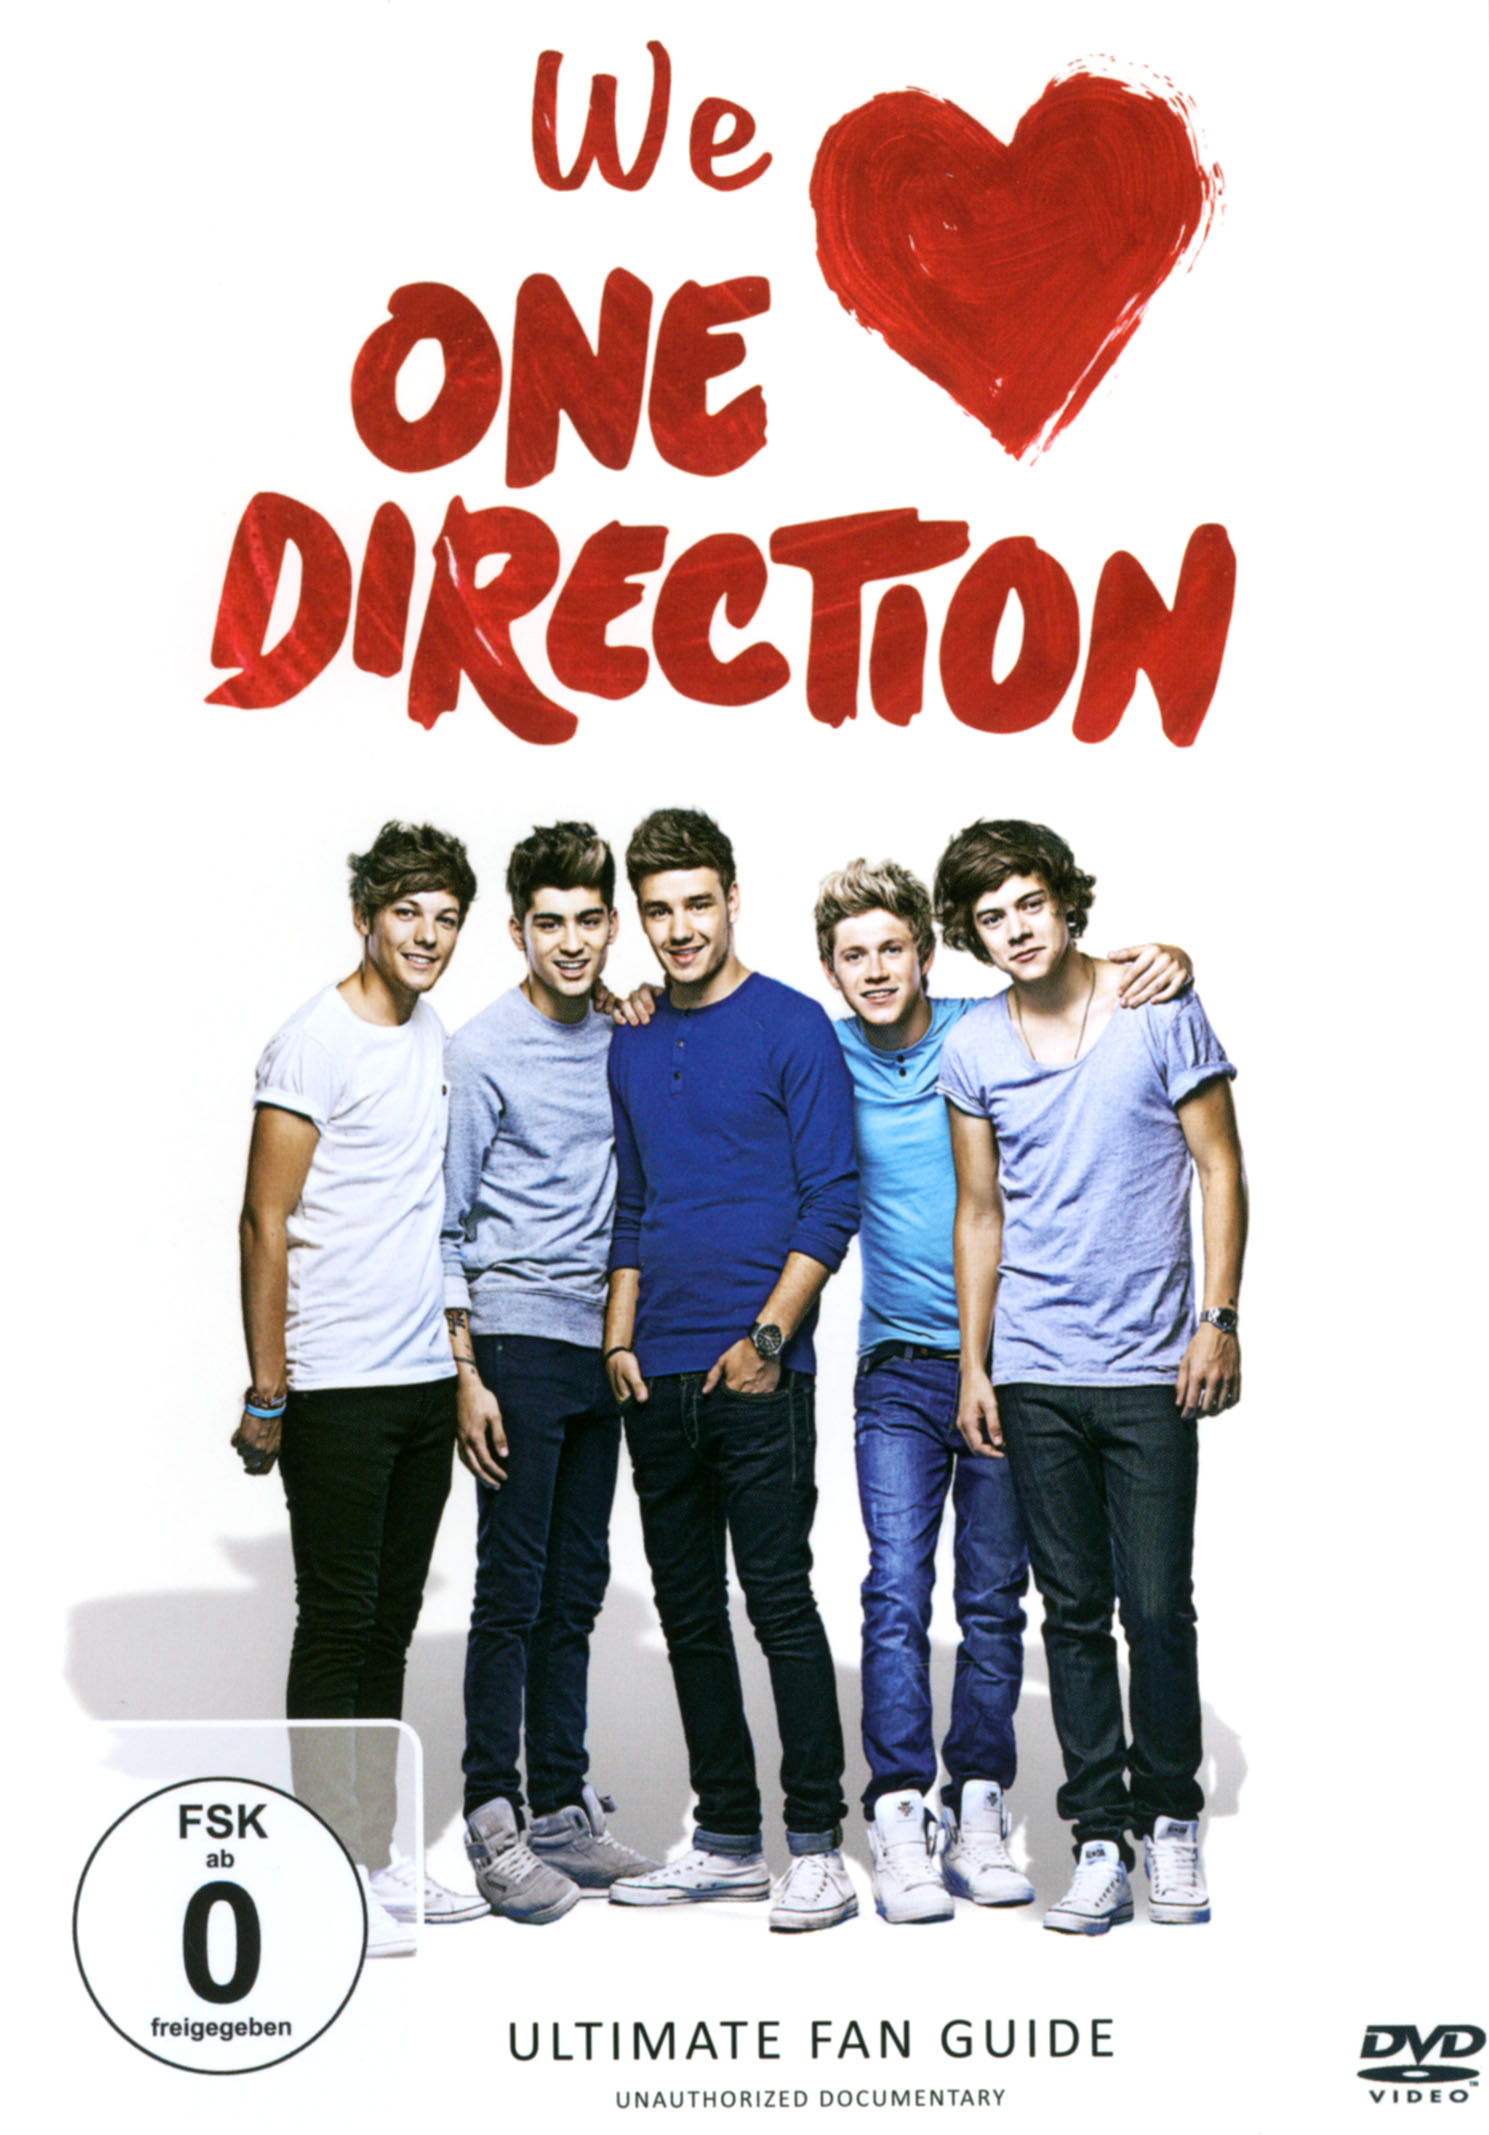 We Love One Direction: Ultimate Fan Guide